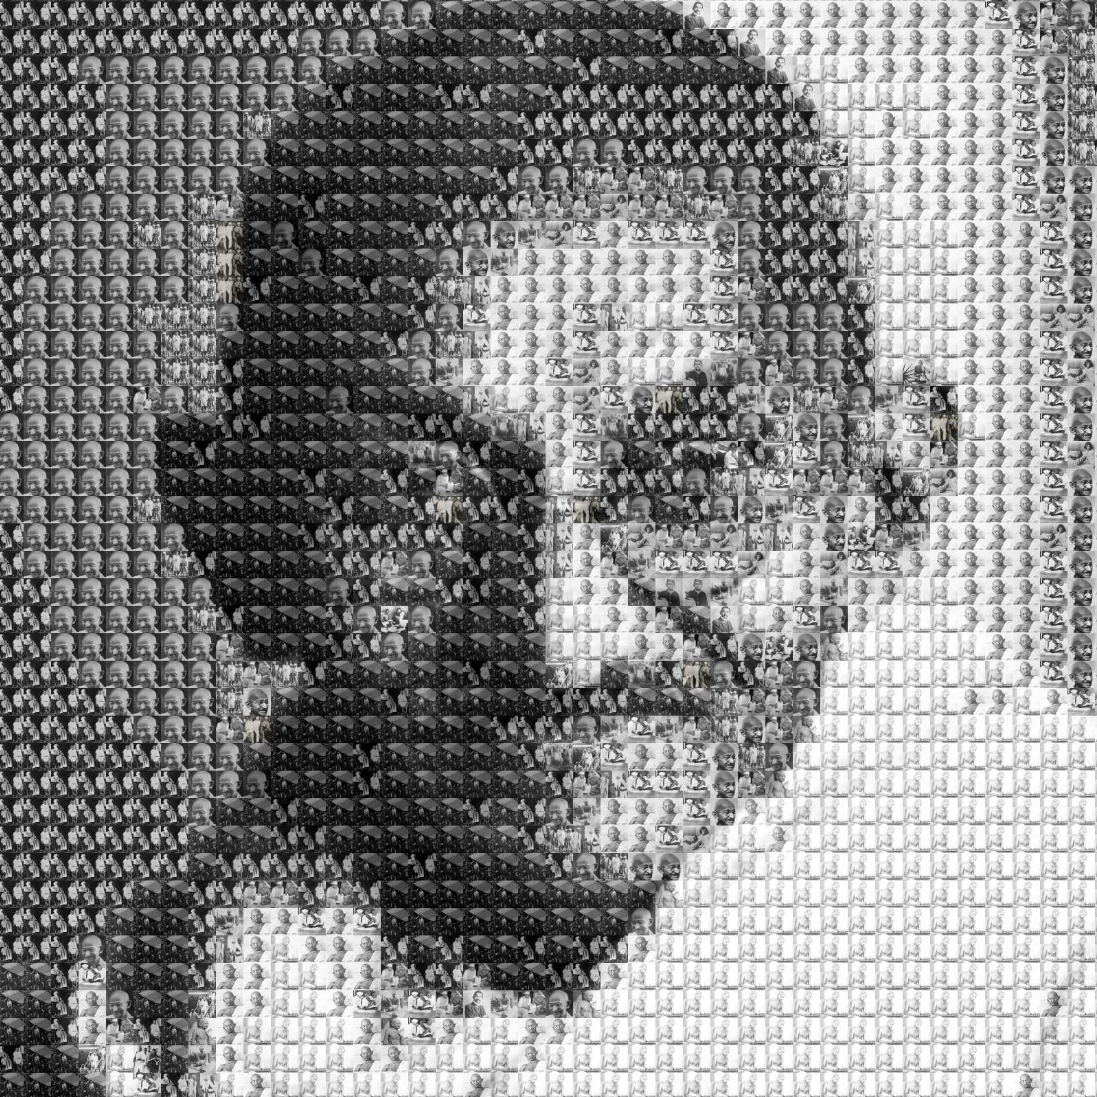 Gandhi through Images